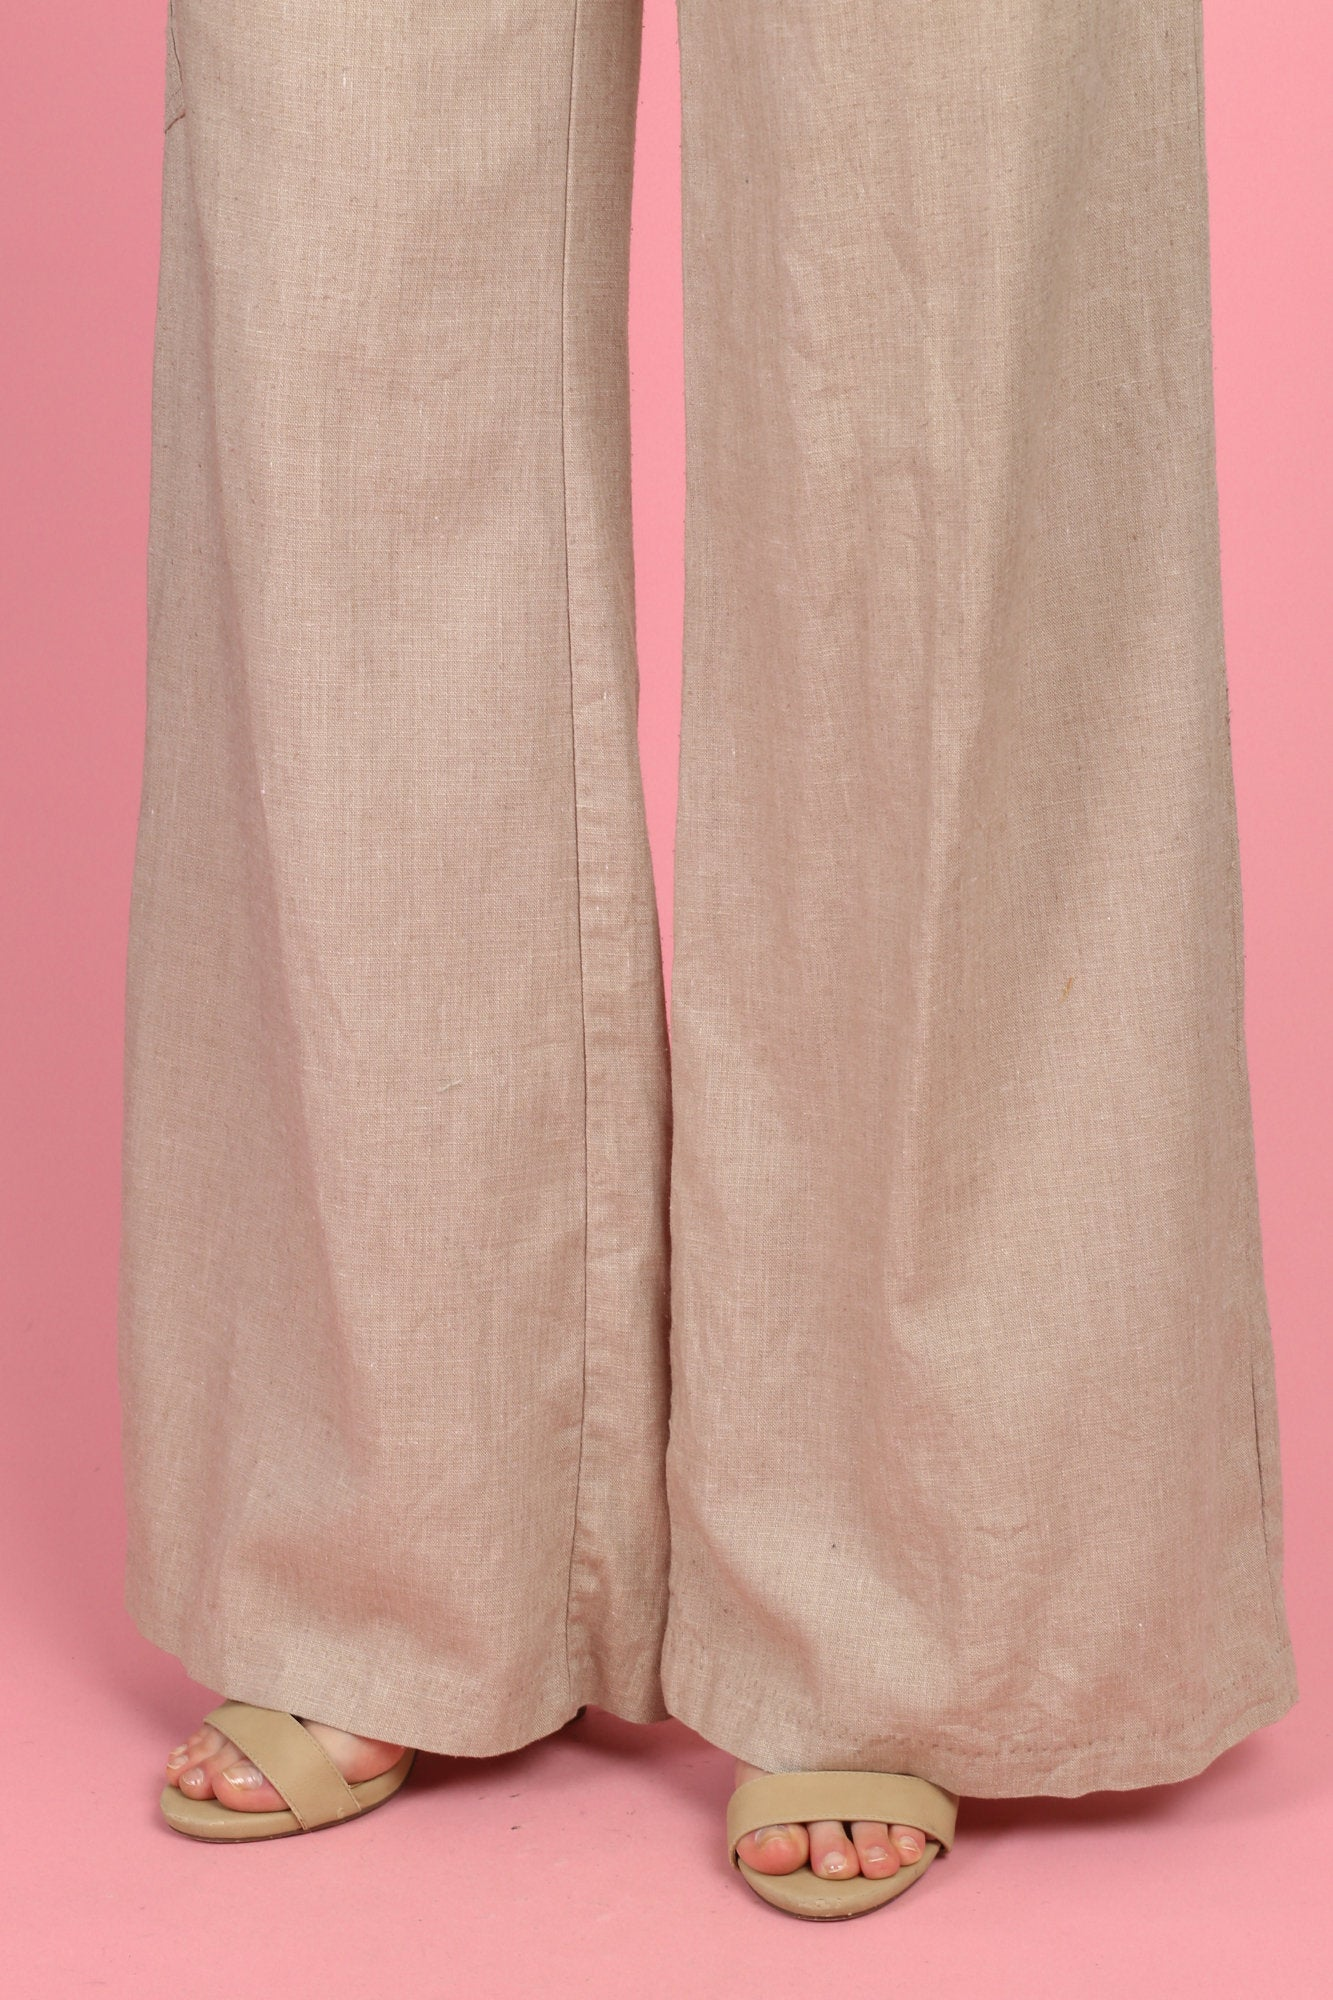 70s Boho Linen Wide Leg Pants - Women's Medium